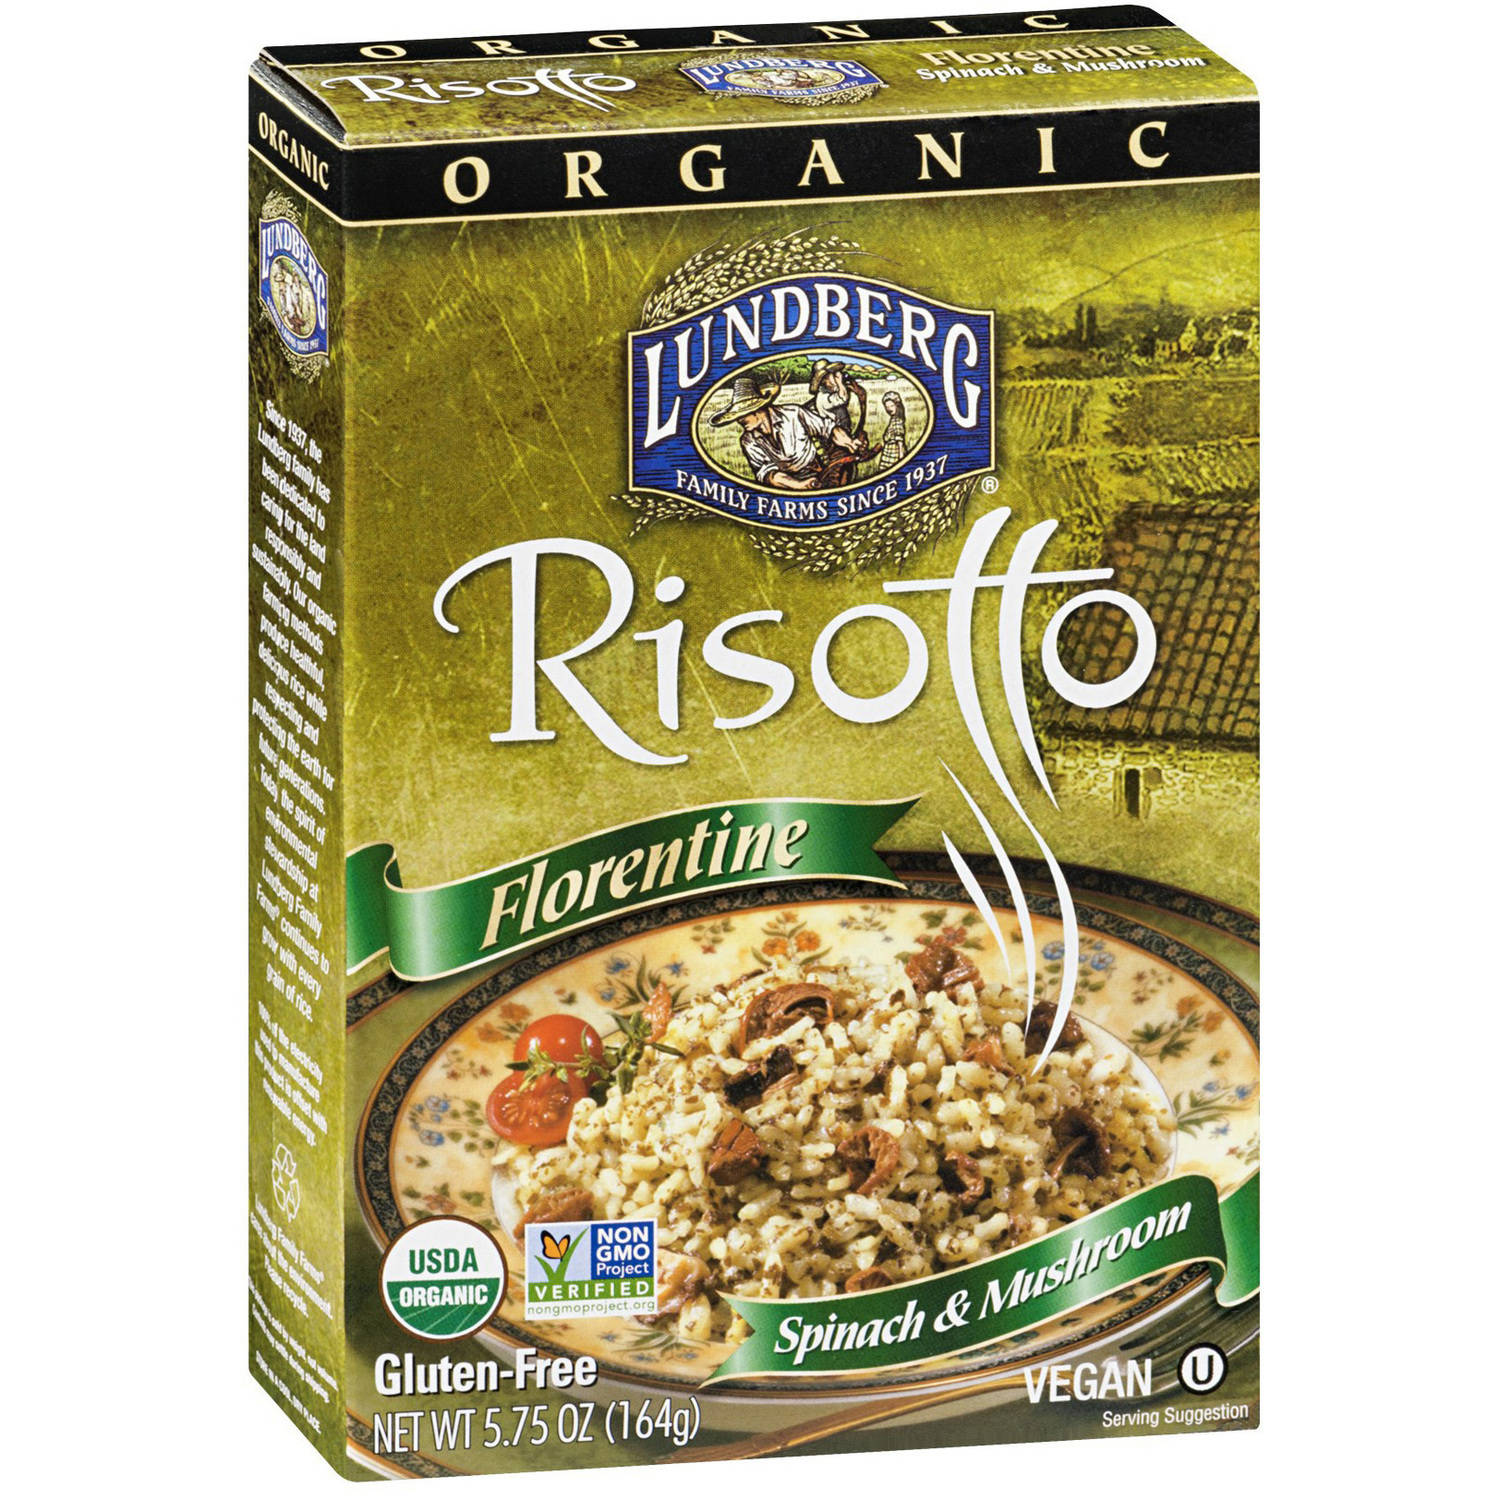 Lundberg Family Farms Family Farms Organic Risotto Florentine, 5.75 OZ (Pack of 6)